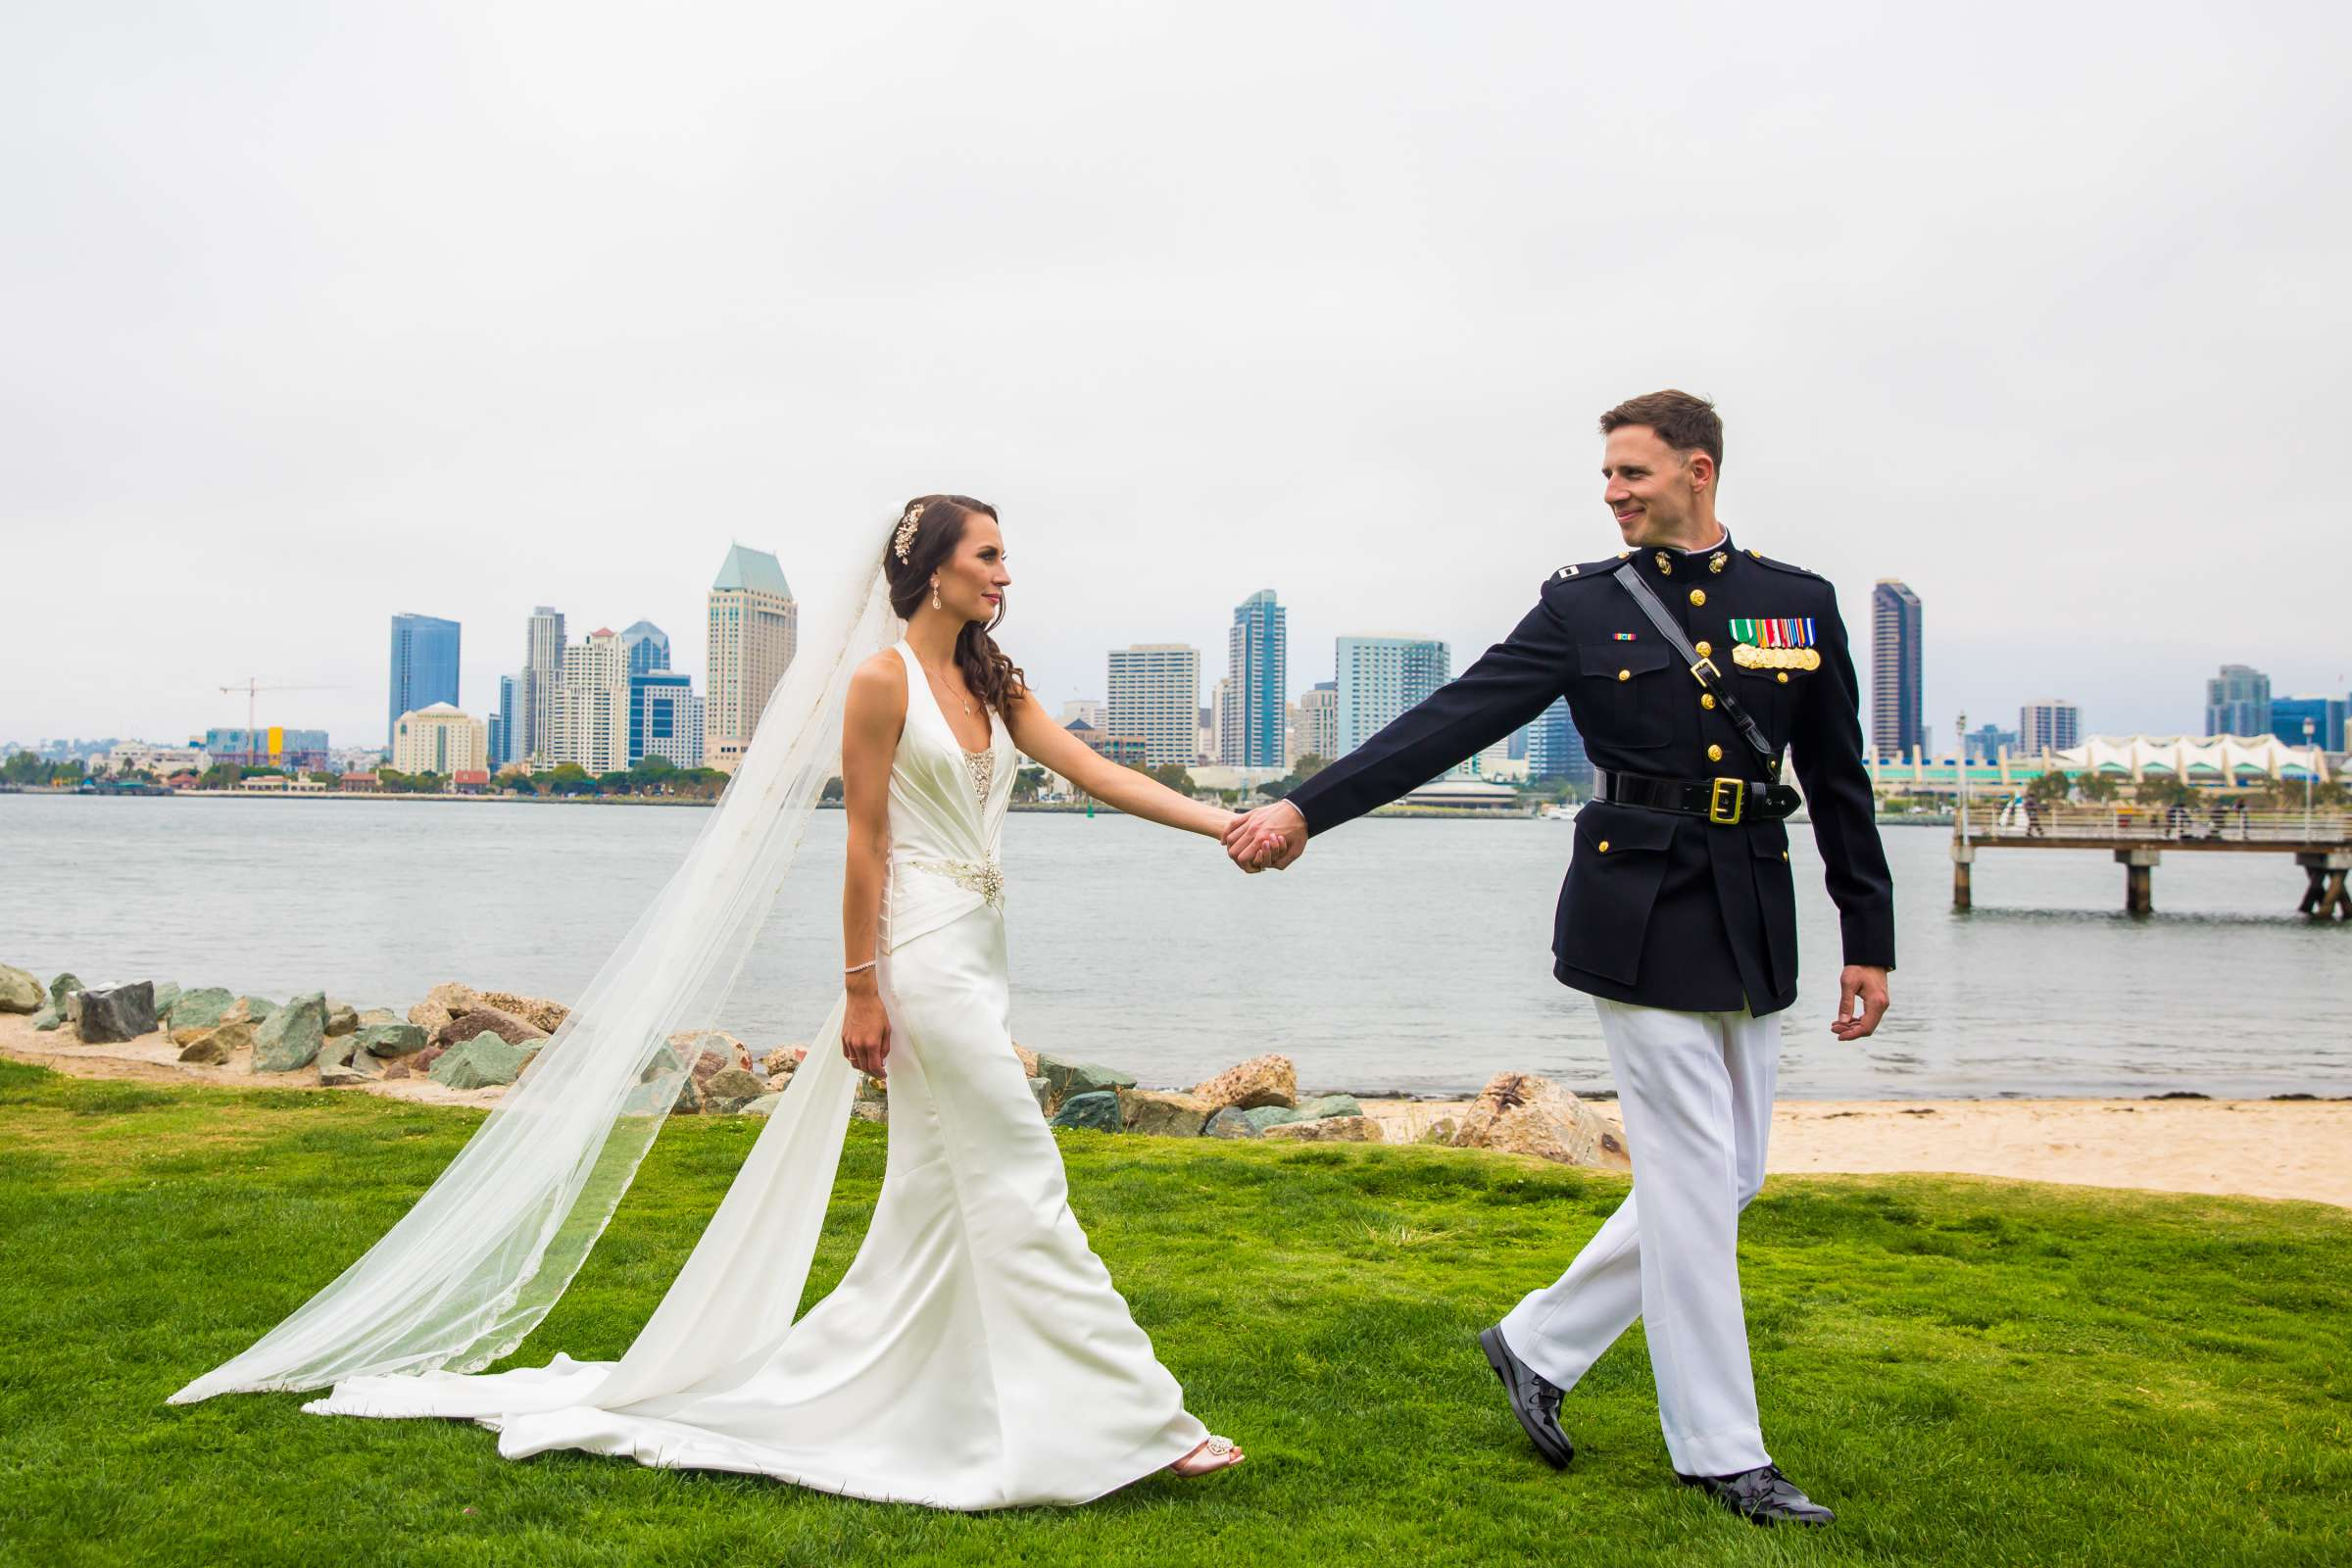 El Cortez Wedding coordinated by Jessica Beiriger, Caitlin and James Wedding Photo #80 by True Photography